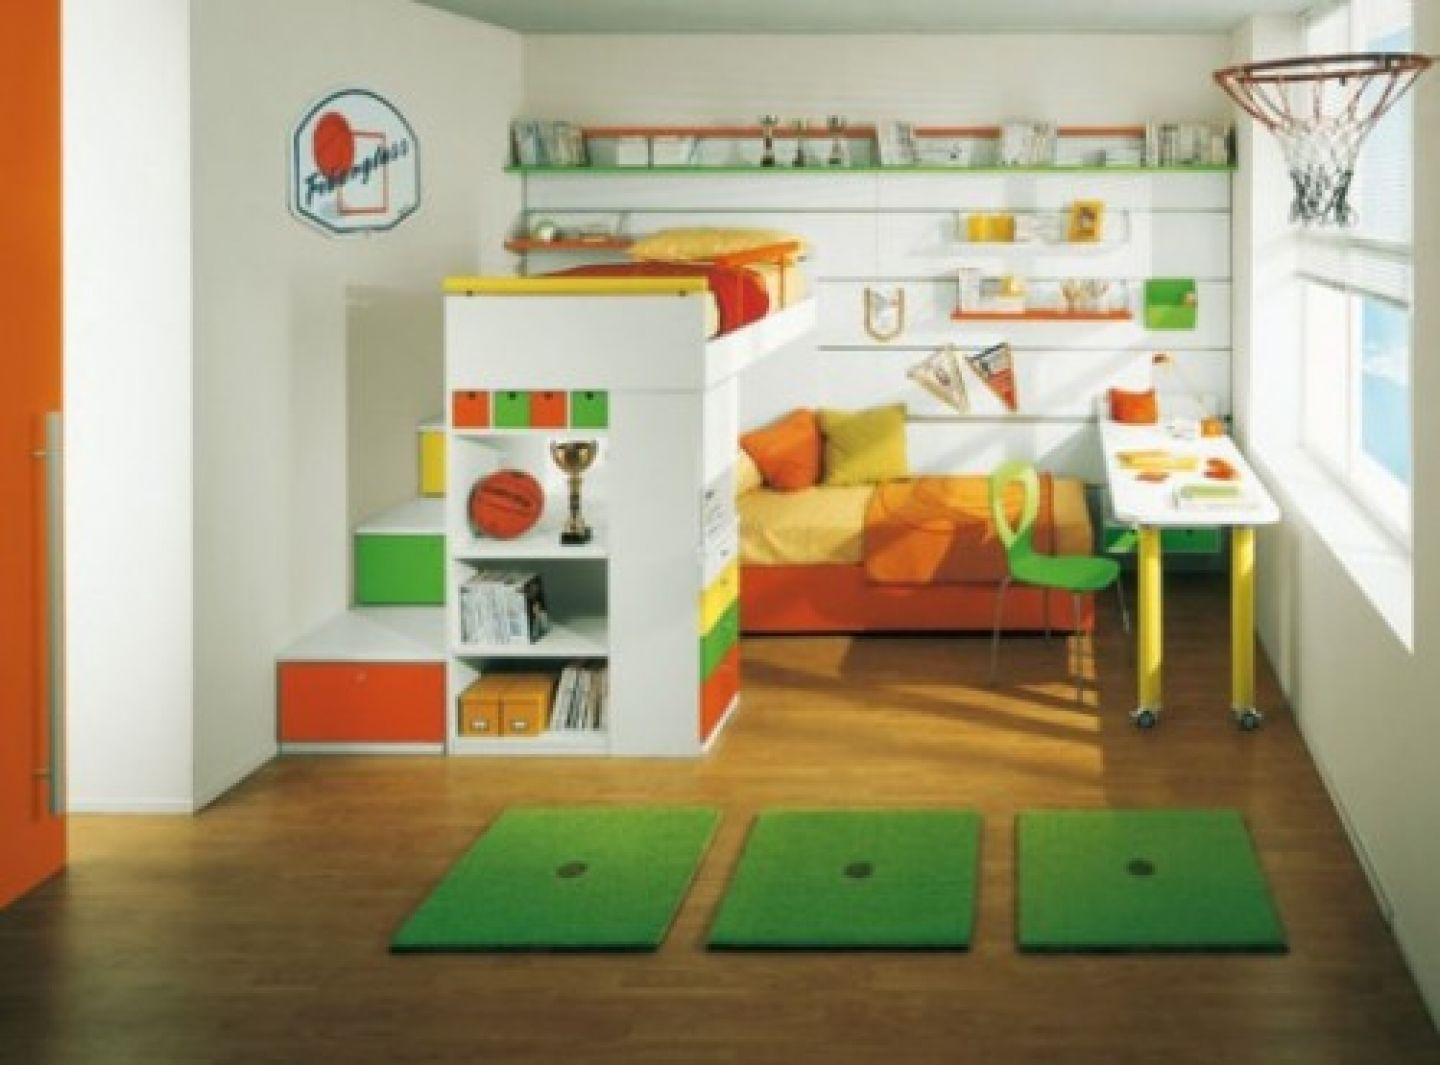 Amazing ikea ideas amazing ikea kids bedroom by fun design ideas image id 14491 giesendesign - Ikea bunk bed room ideas ...